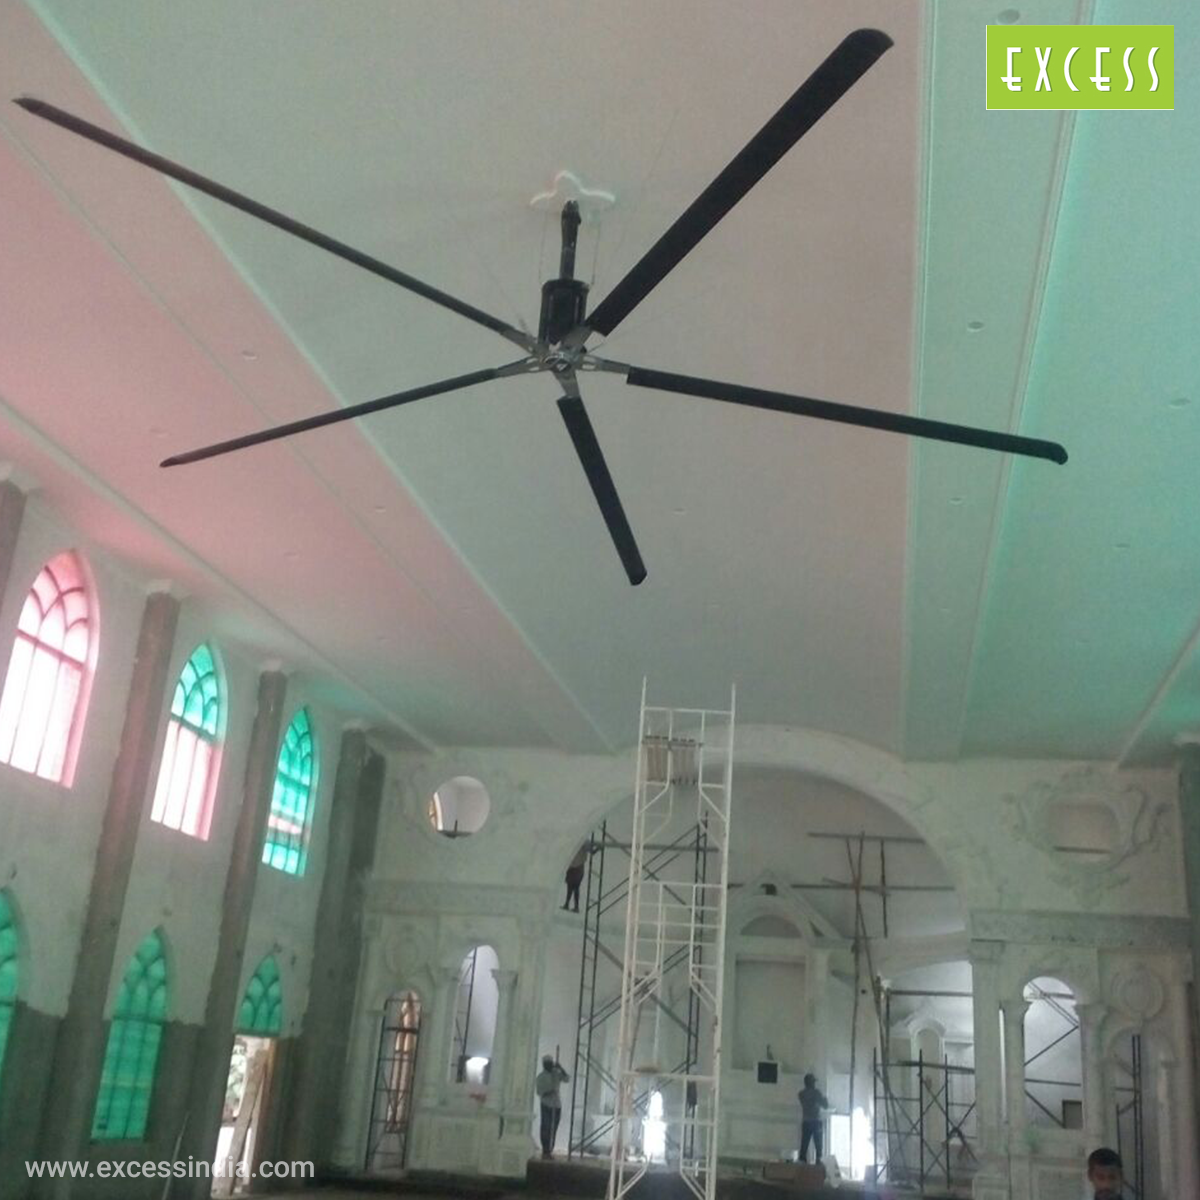 Church HVLS Fans - Excess India